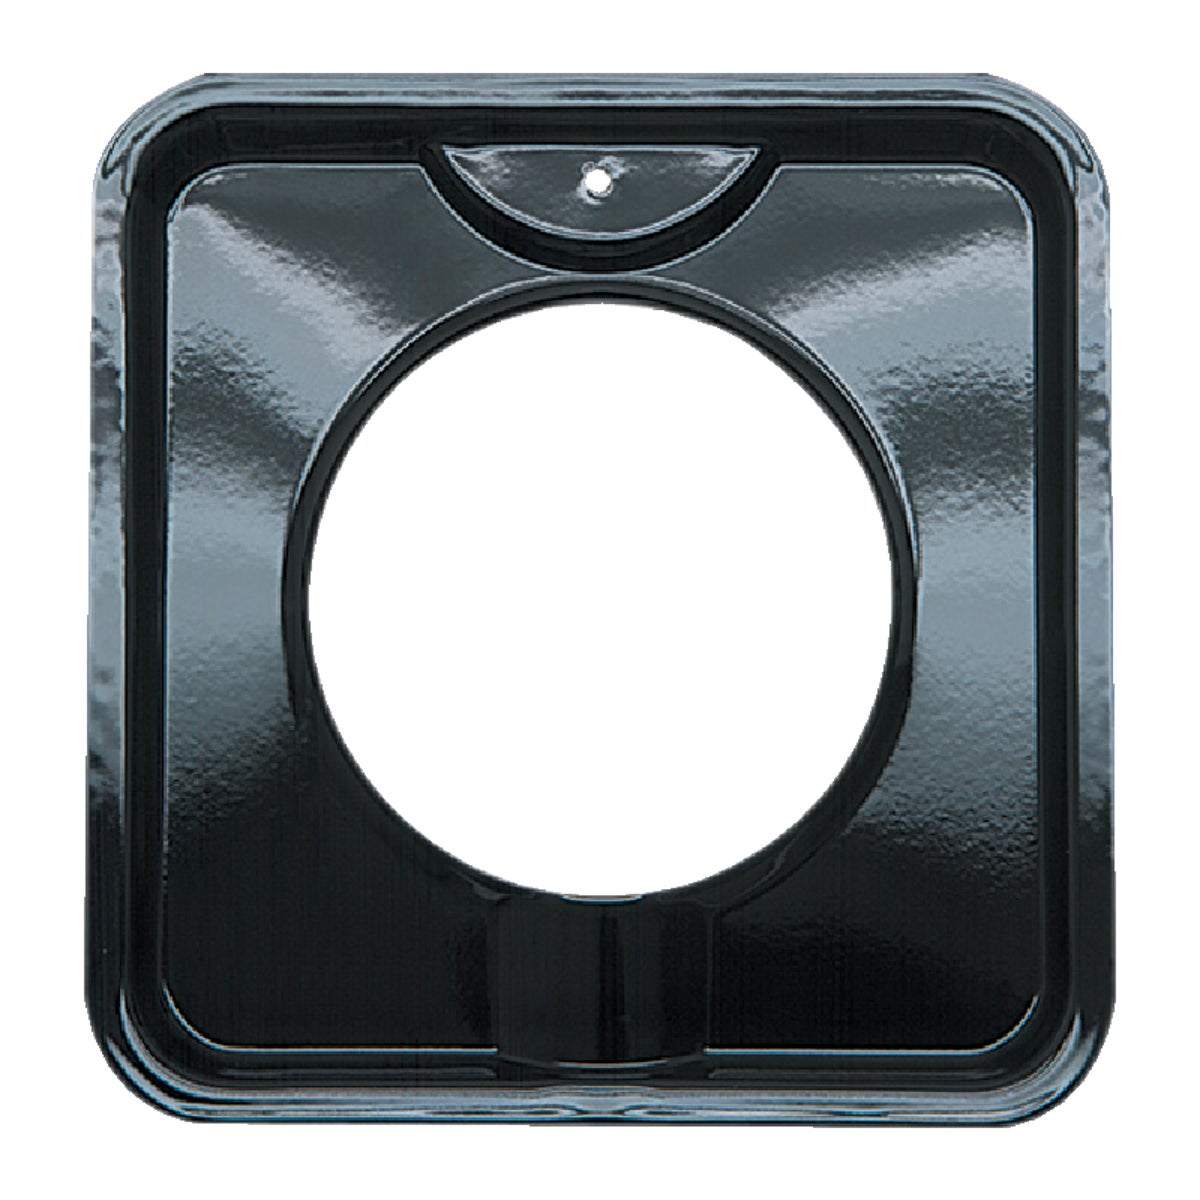 N/S SQUARE GAS DRIP PAN